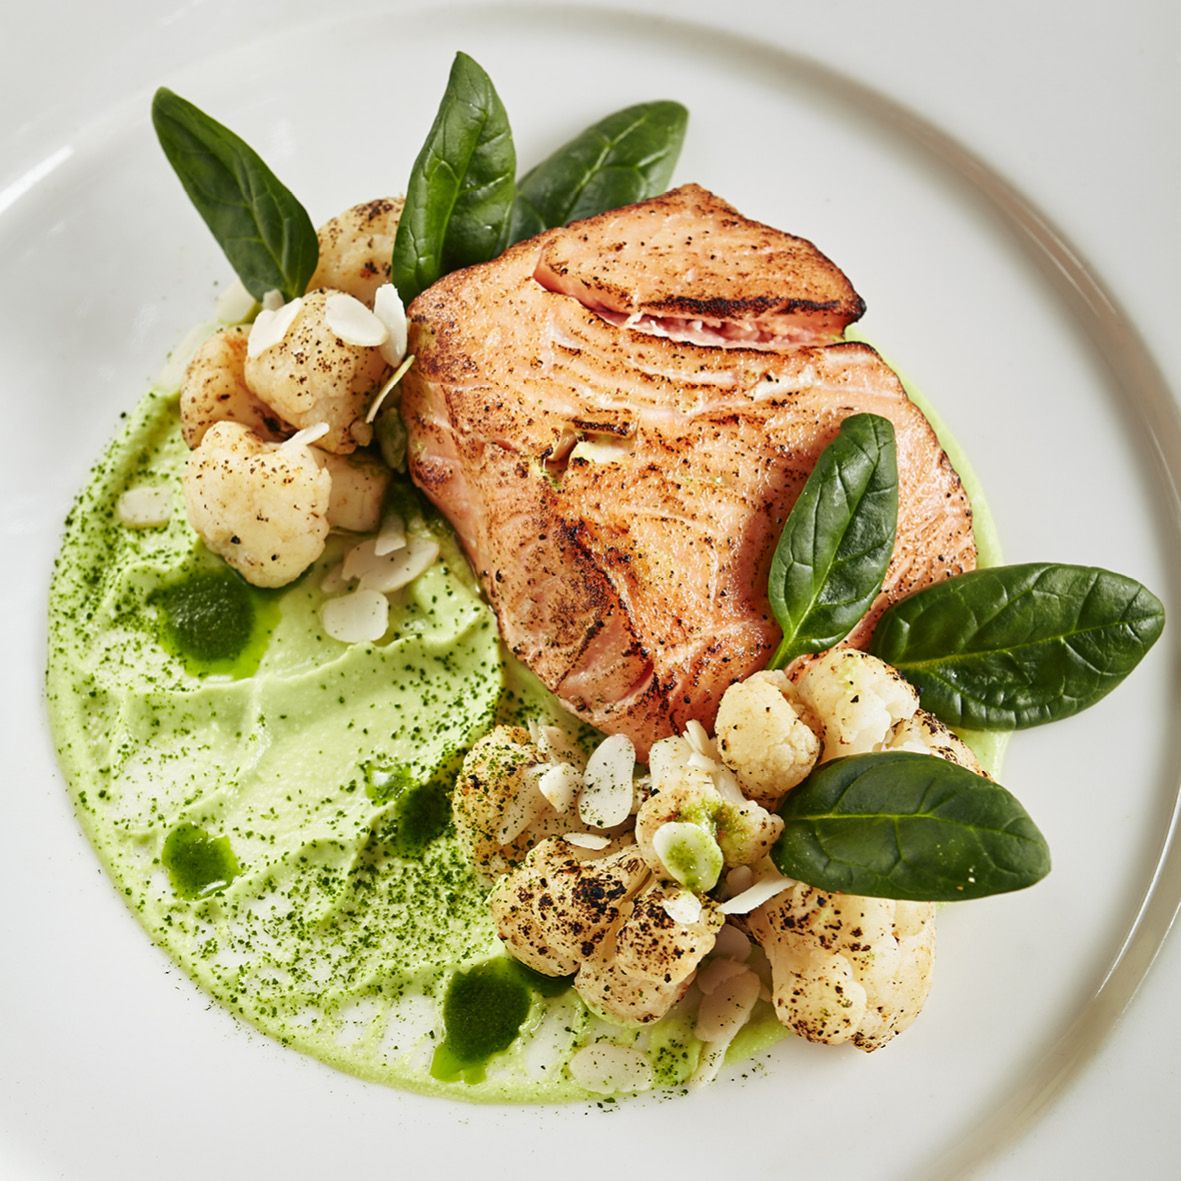 Fillet_of_salmon_with_green_pea_cream_and_scorched_cauliflower.jpg